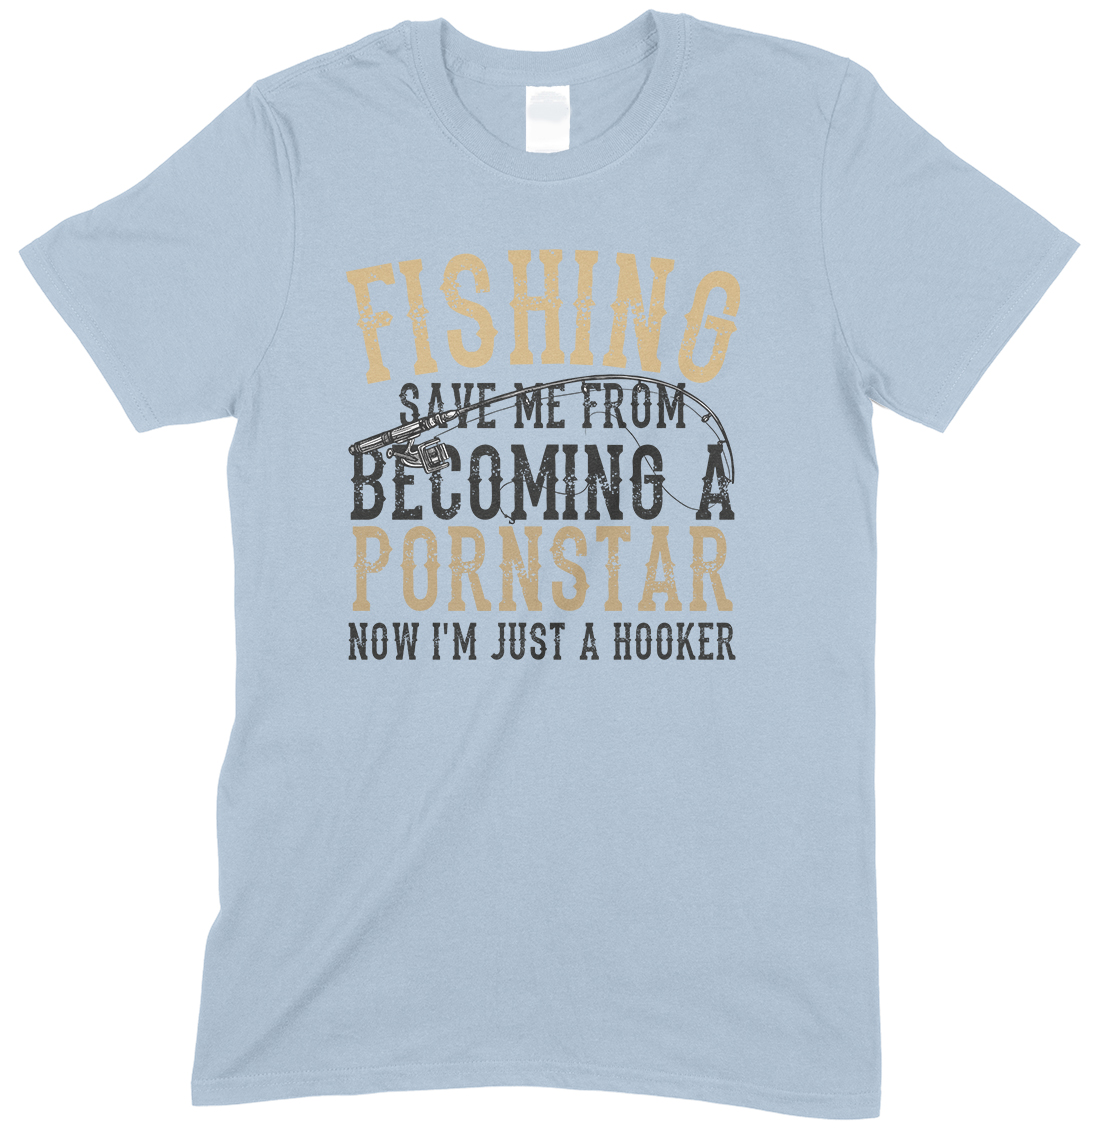 Fishing Save Me from Becoming A Pornstar Adults Unisex T Shirt